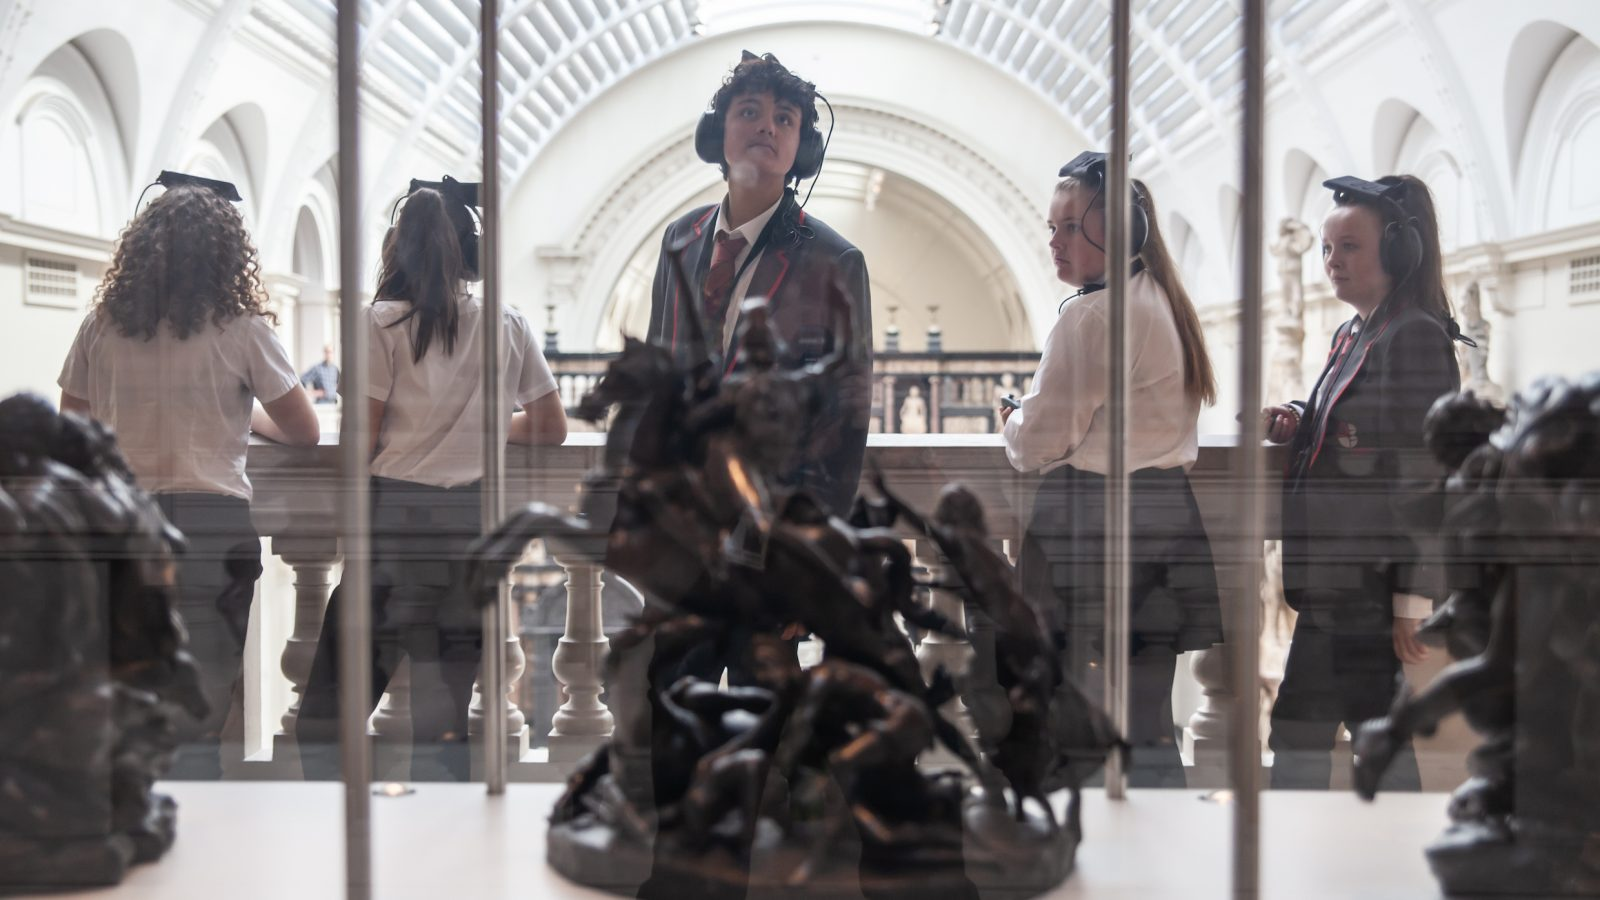 Secondary school students wearing headphones looking into a glass case.